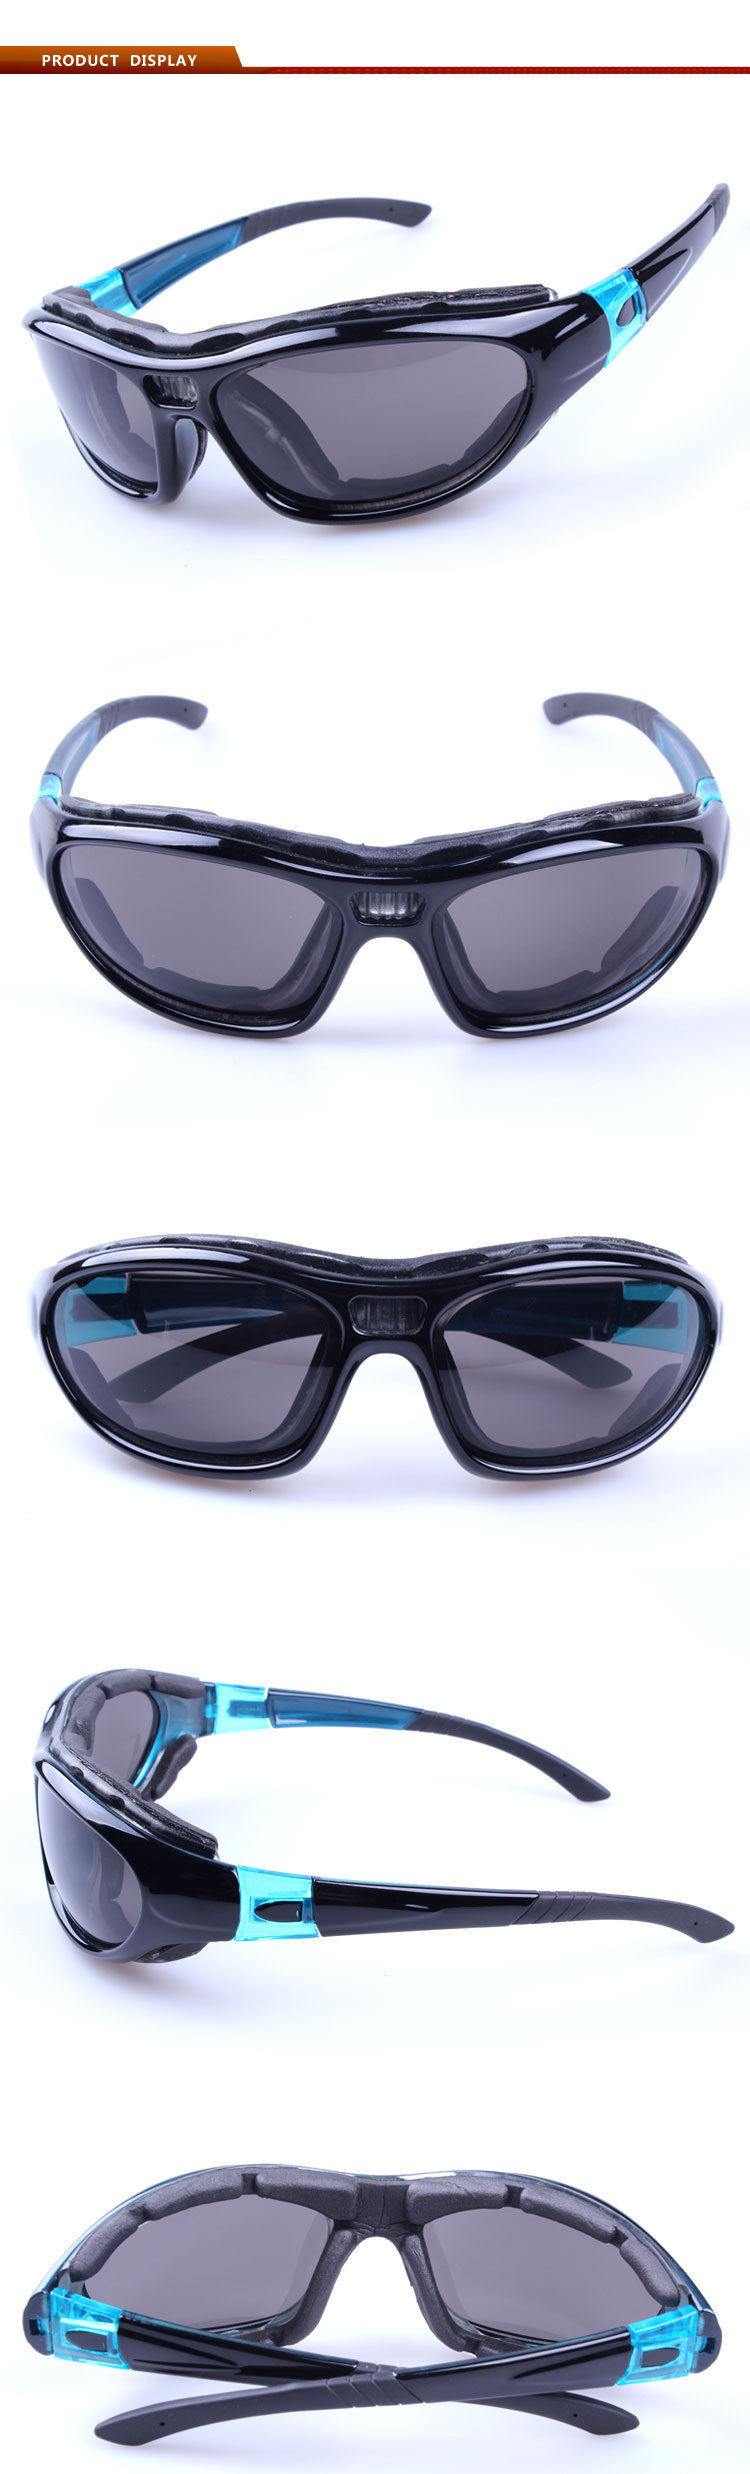 eco-friendly wholesale polarized sunglasses 2020 for outdoor sports